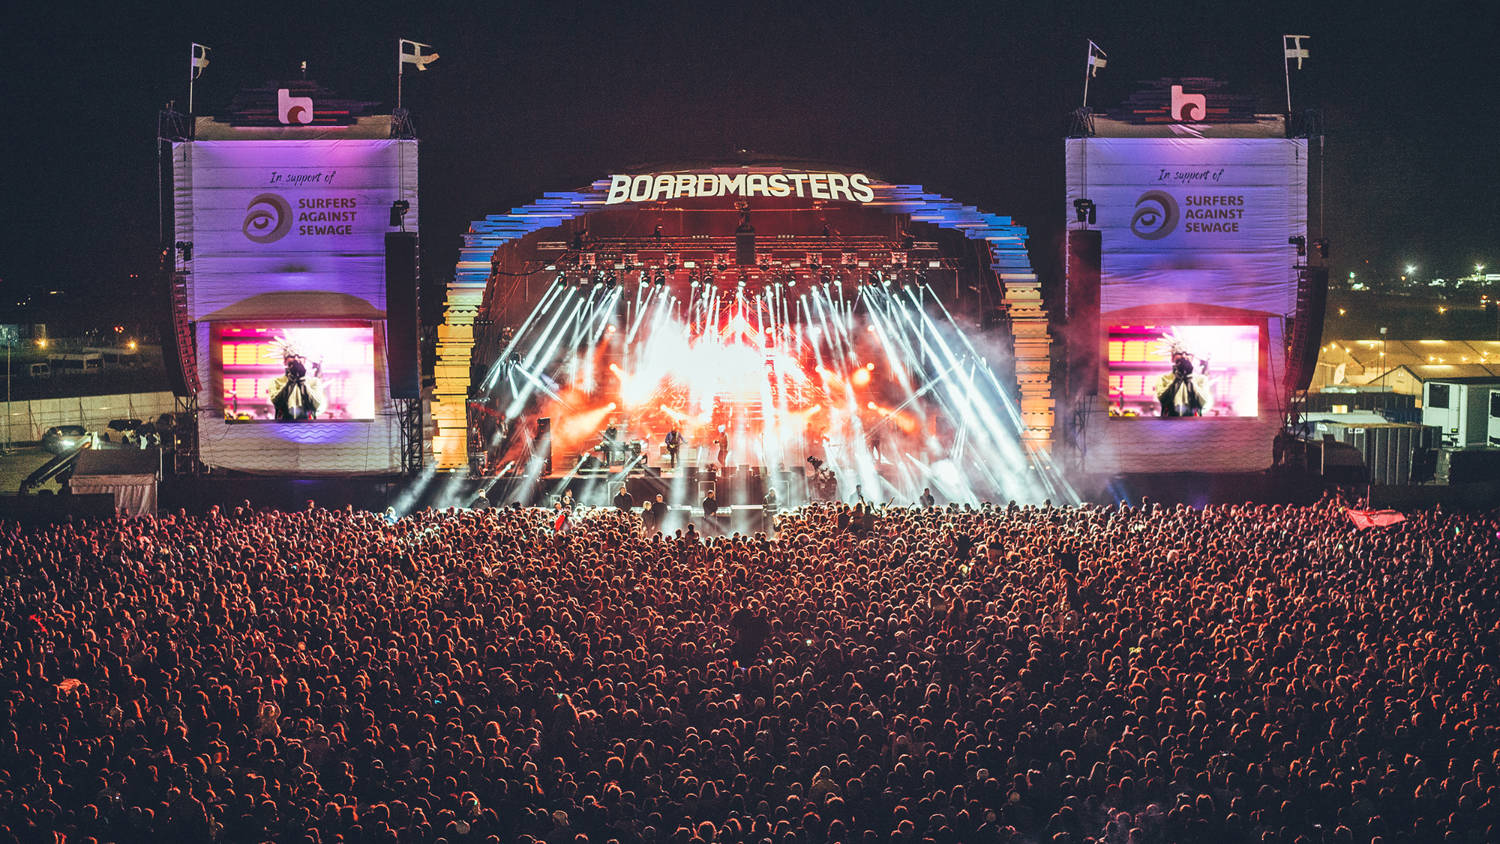 Boardmasters Festival confirms 2020 dates & special early bird access for 2019 ticket holders